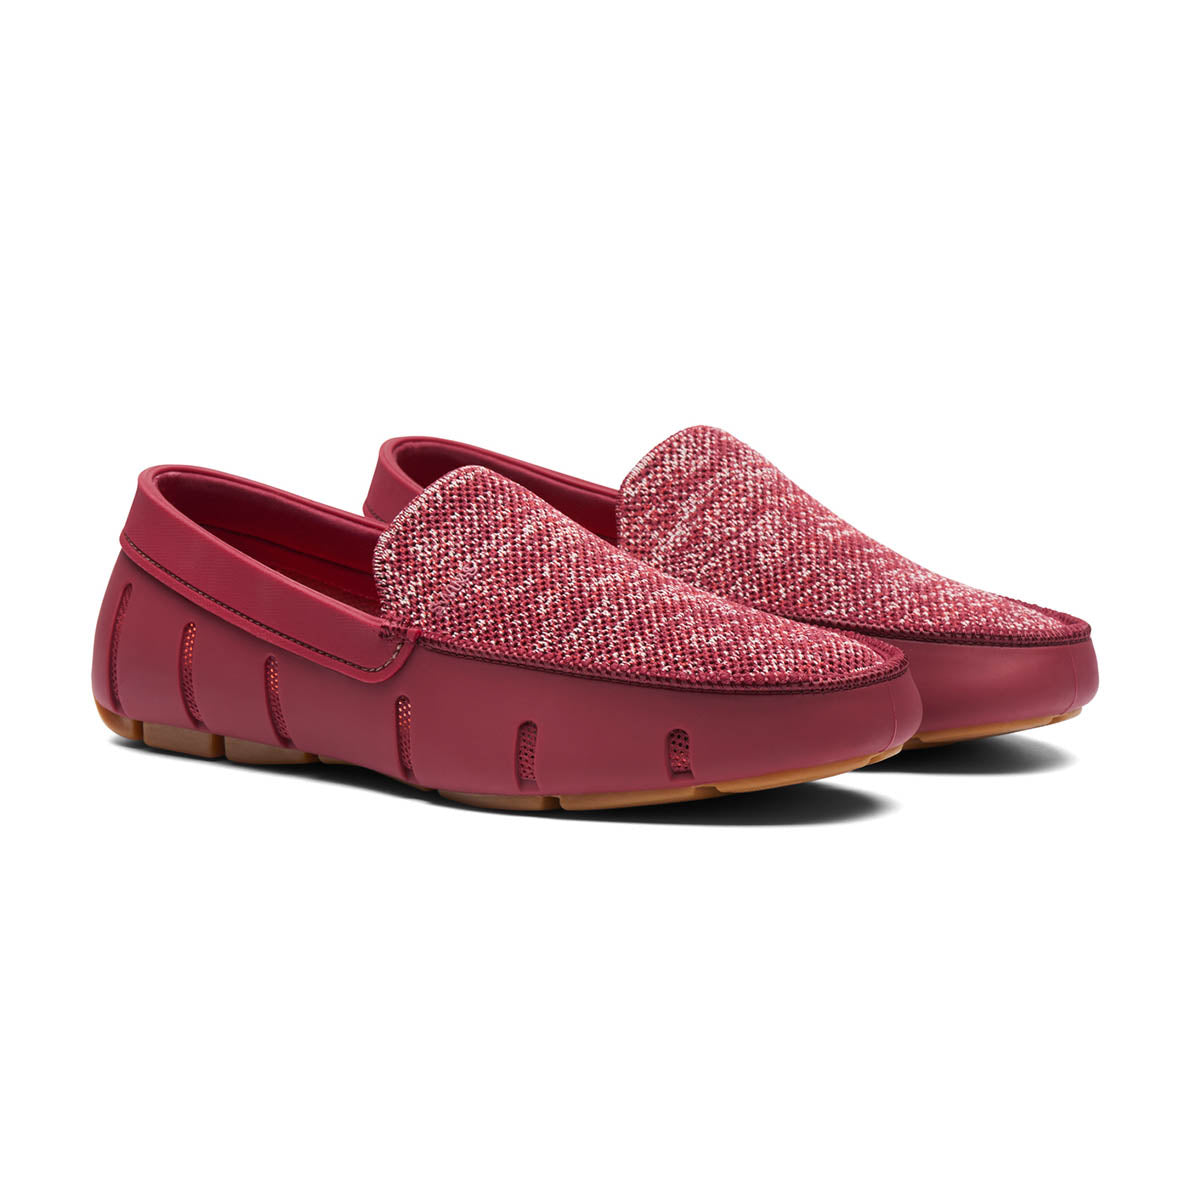 Classic Venetian Loafer - background::white,variant::Cabernet/Gum